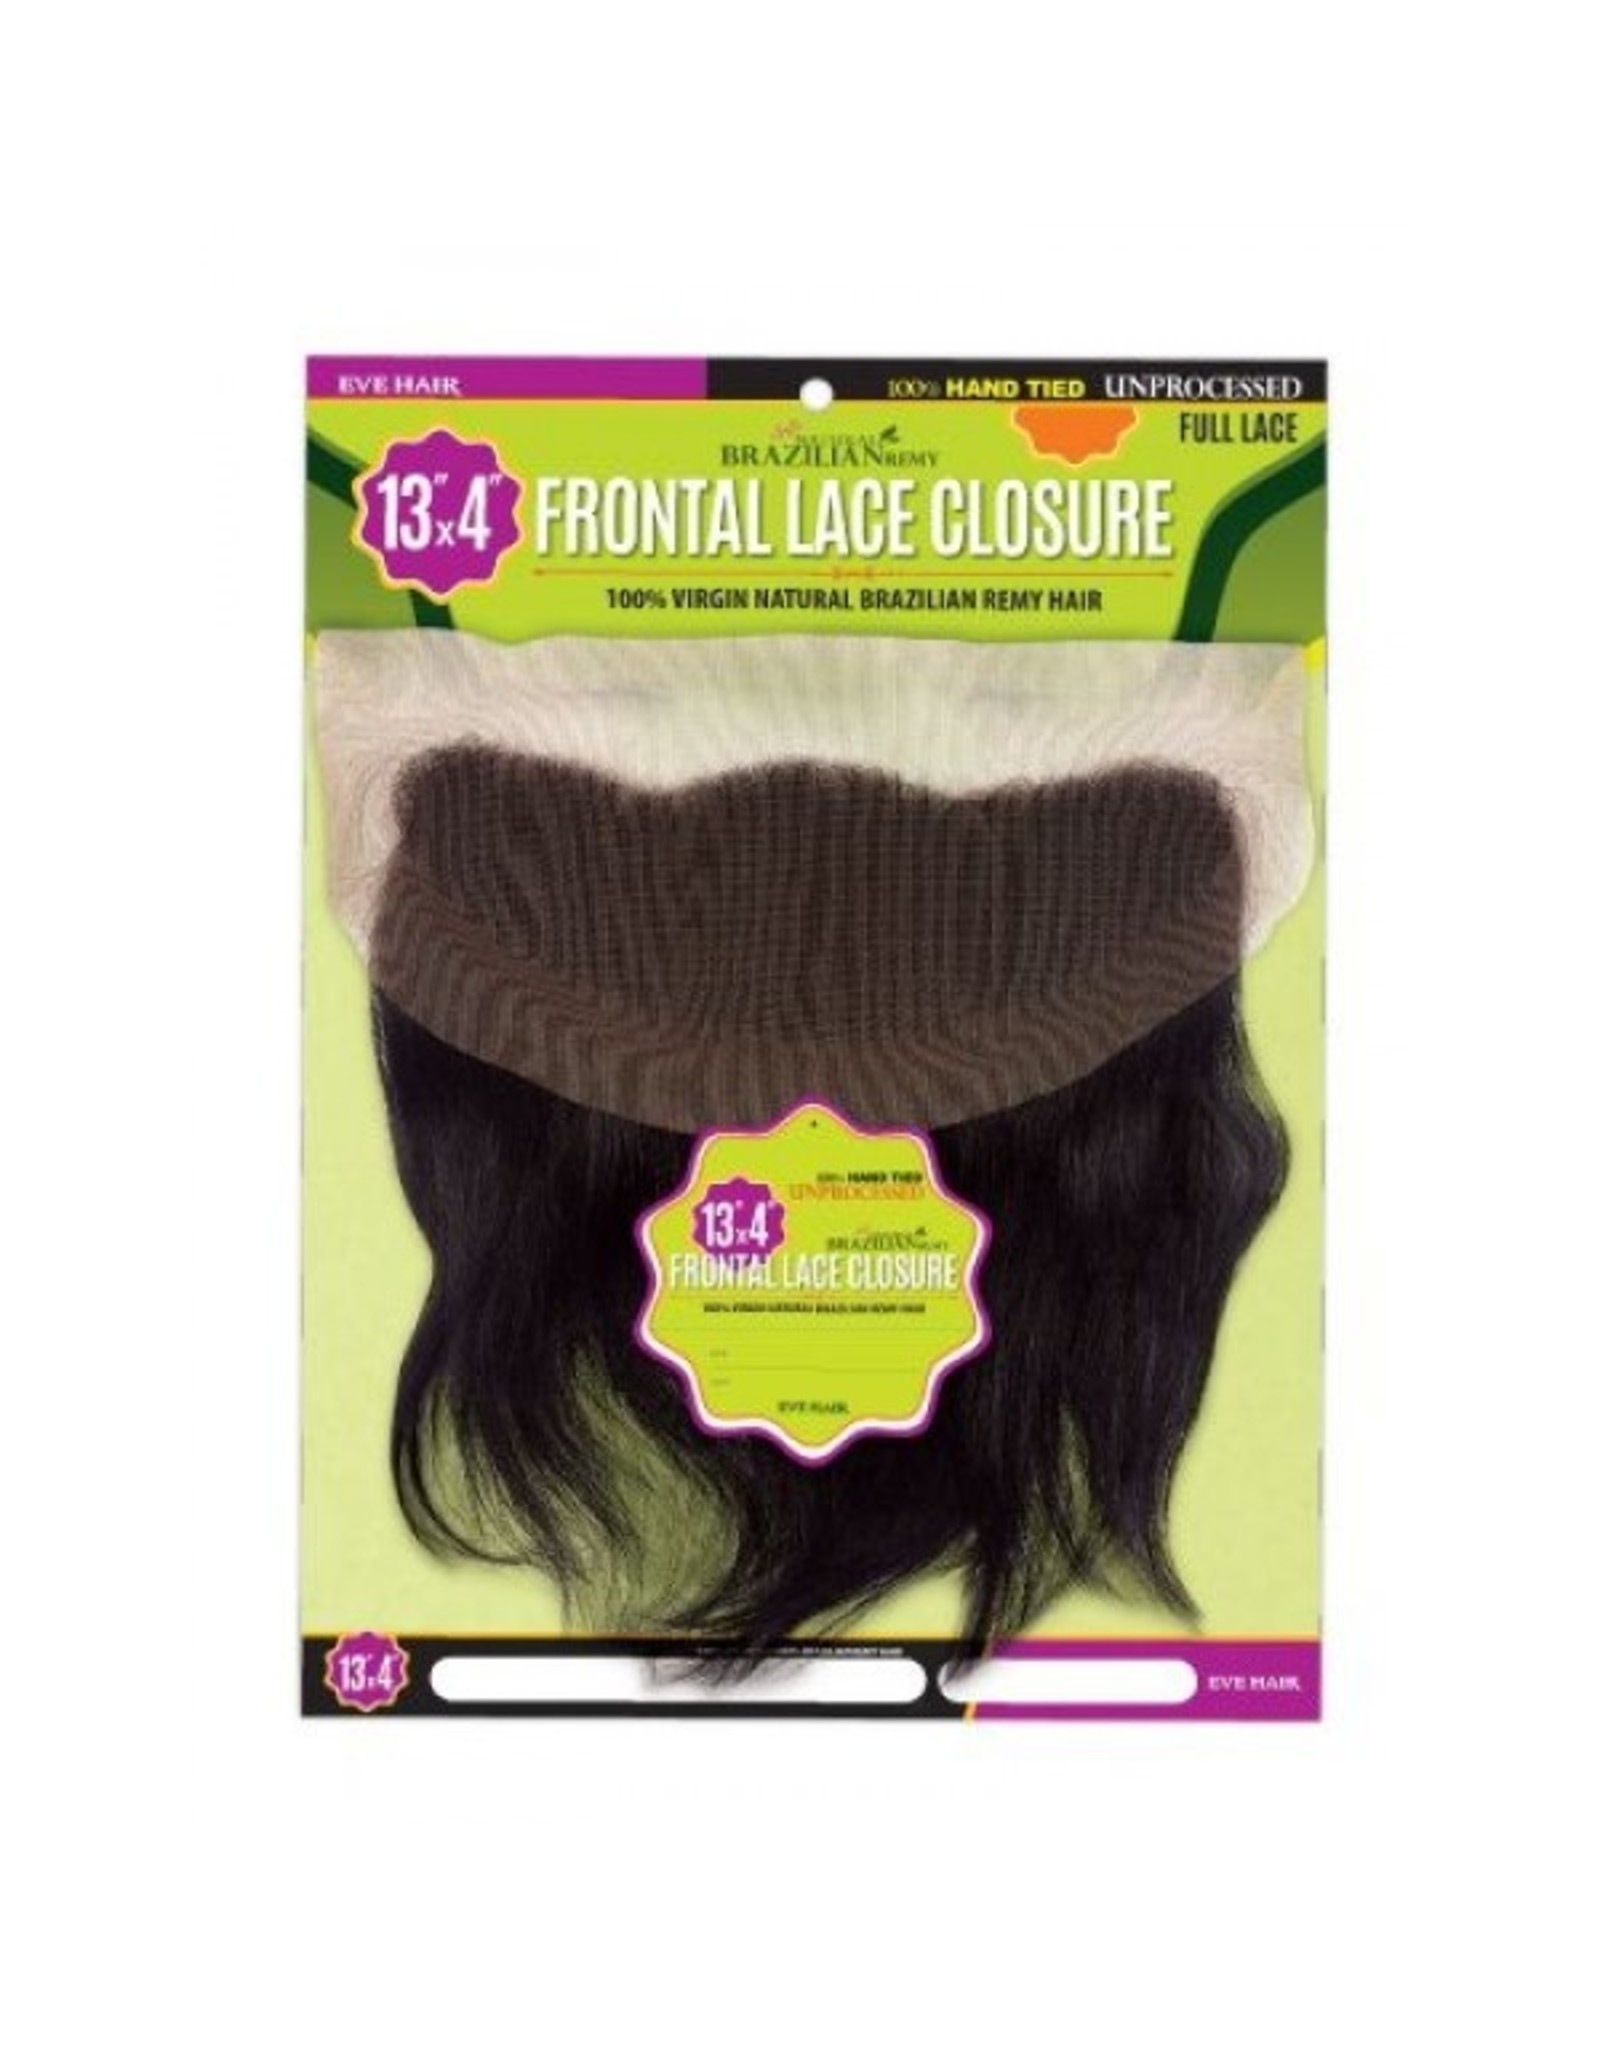 EVE'S HAIR 13X4 FRONTAL LACE CLOSURE